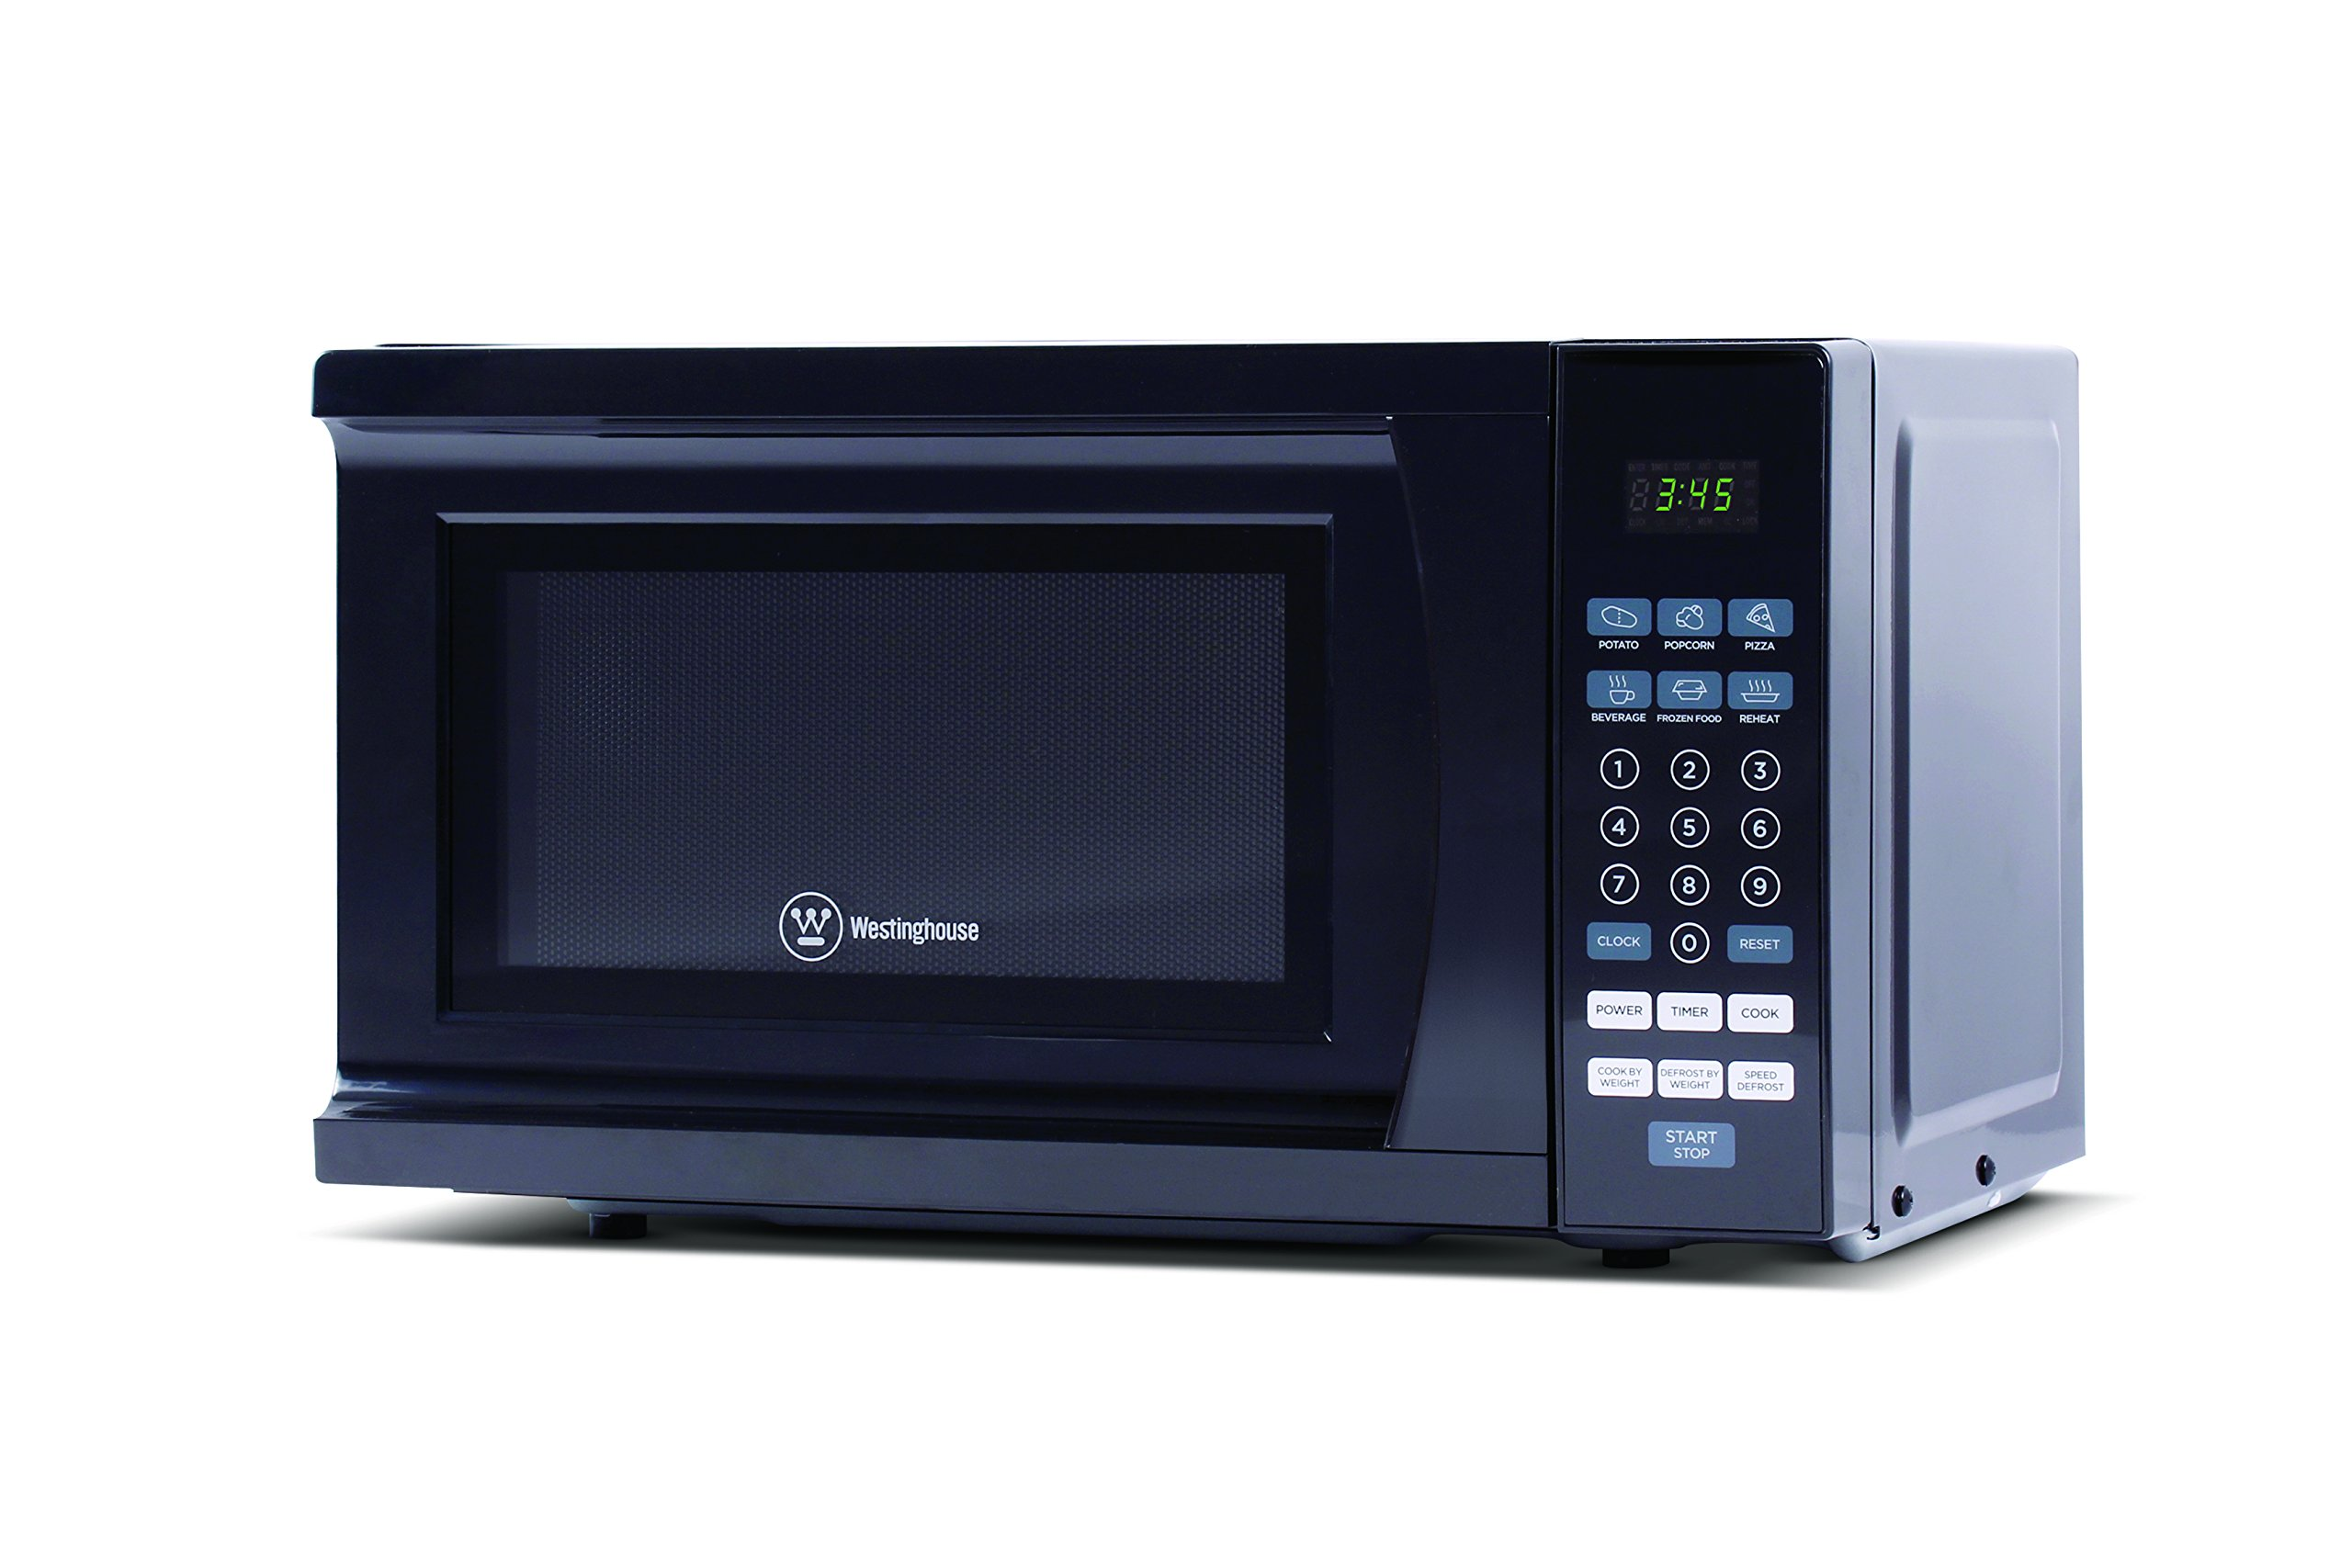 Westinghouse WCM770B 700 Watt Counter Top Microwave Oven, 0.7 Cubic Feet, Black Cabinet by Westinghouse (Image #2)